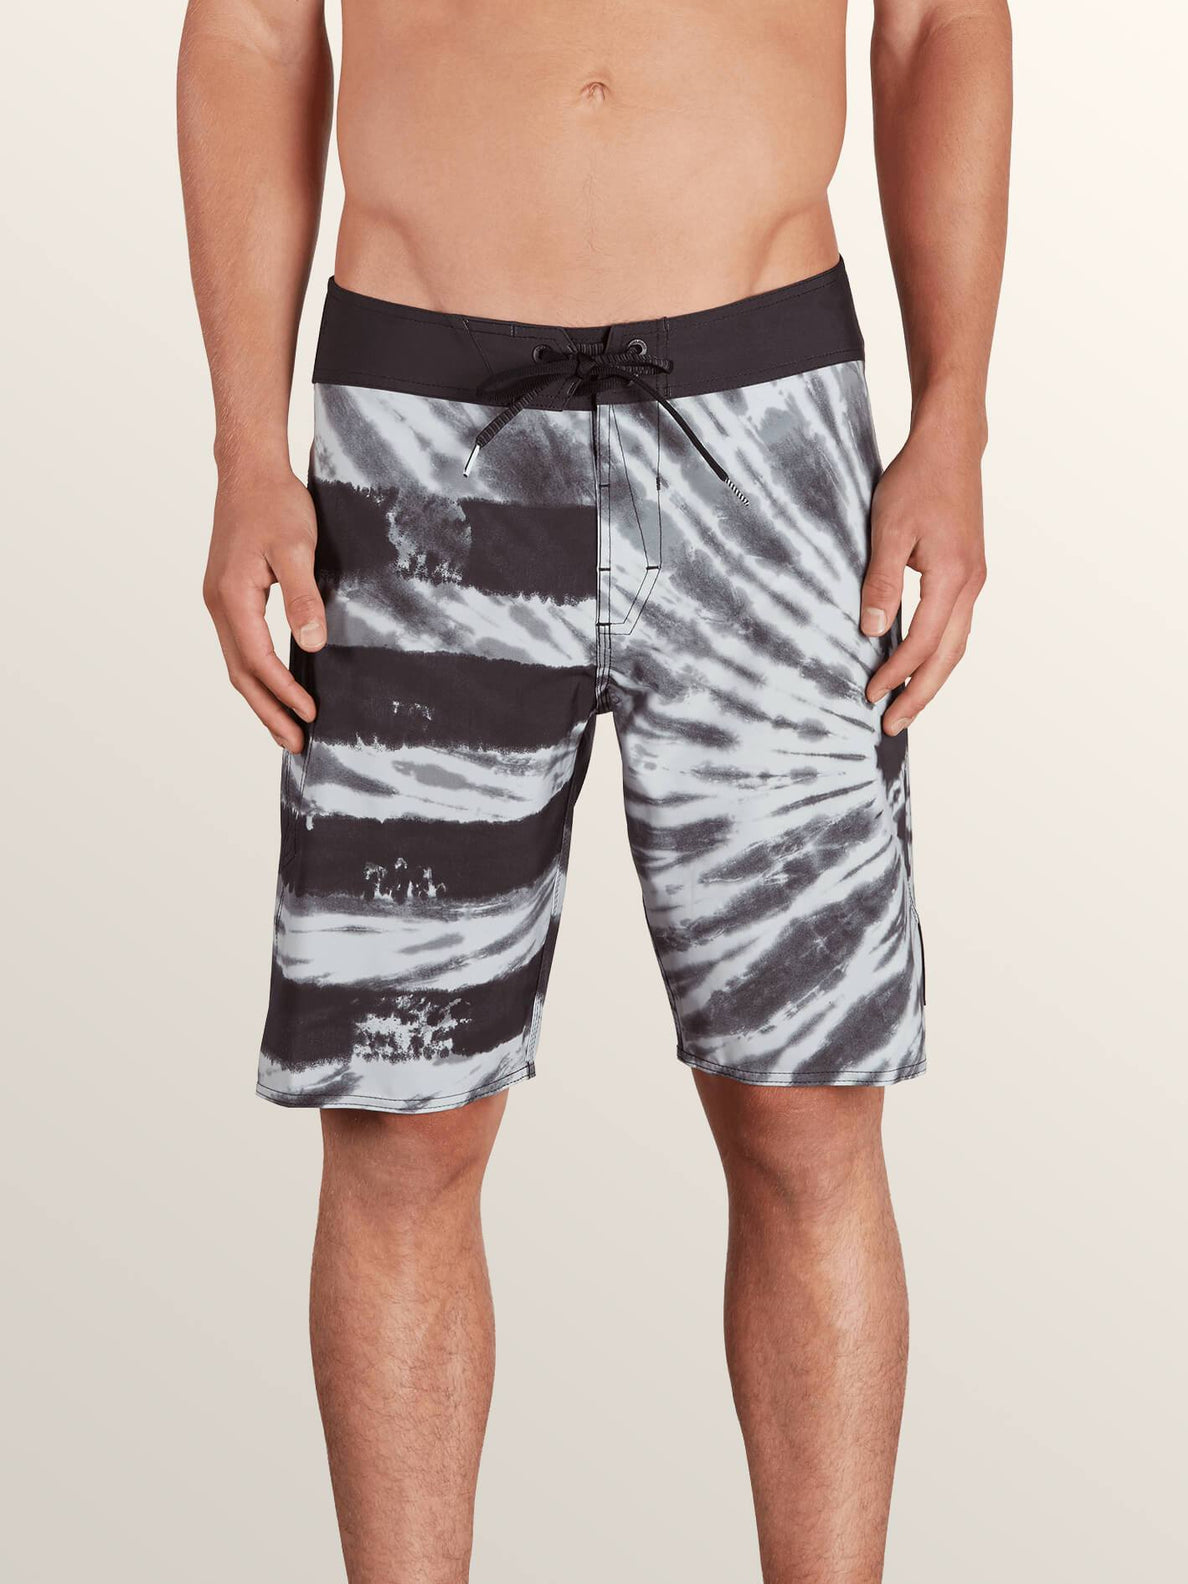 Peace Stone Mod Boardshorts In Black, Front View